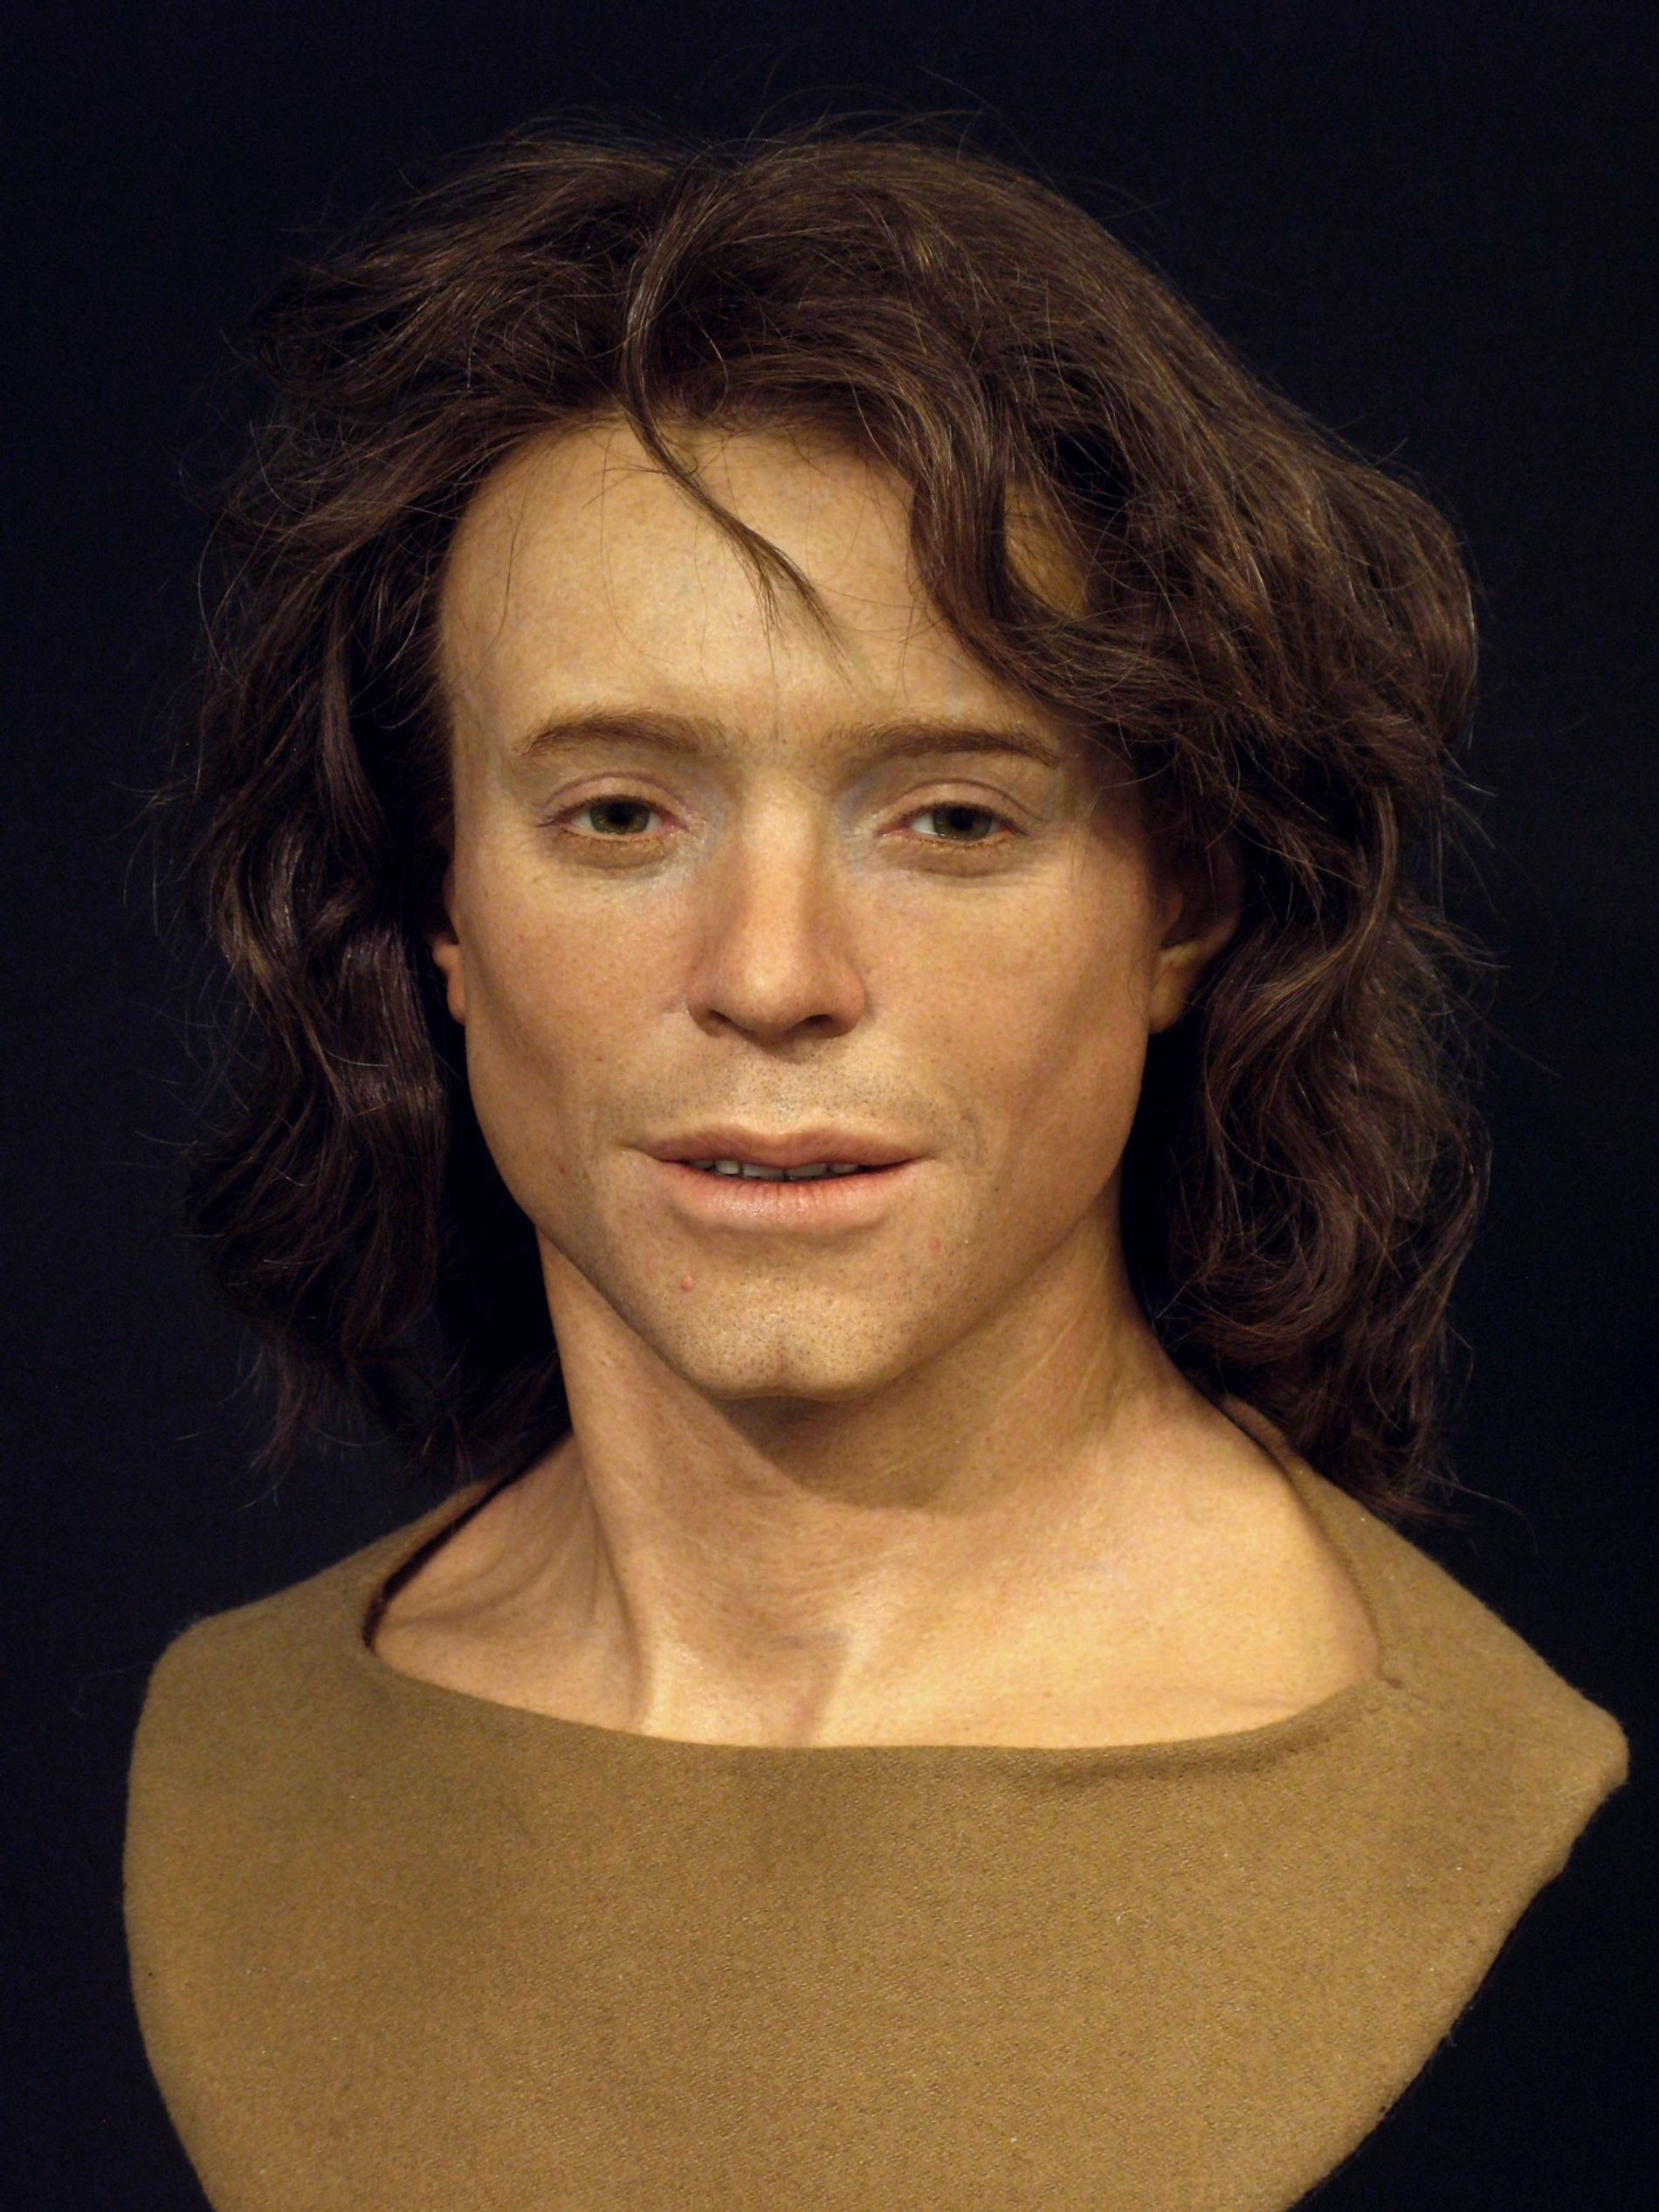 Adelasius Ebalchus, who lived in northern Swizterland 1,300 years ago. He was in his late teens or early twenties when he died.